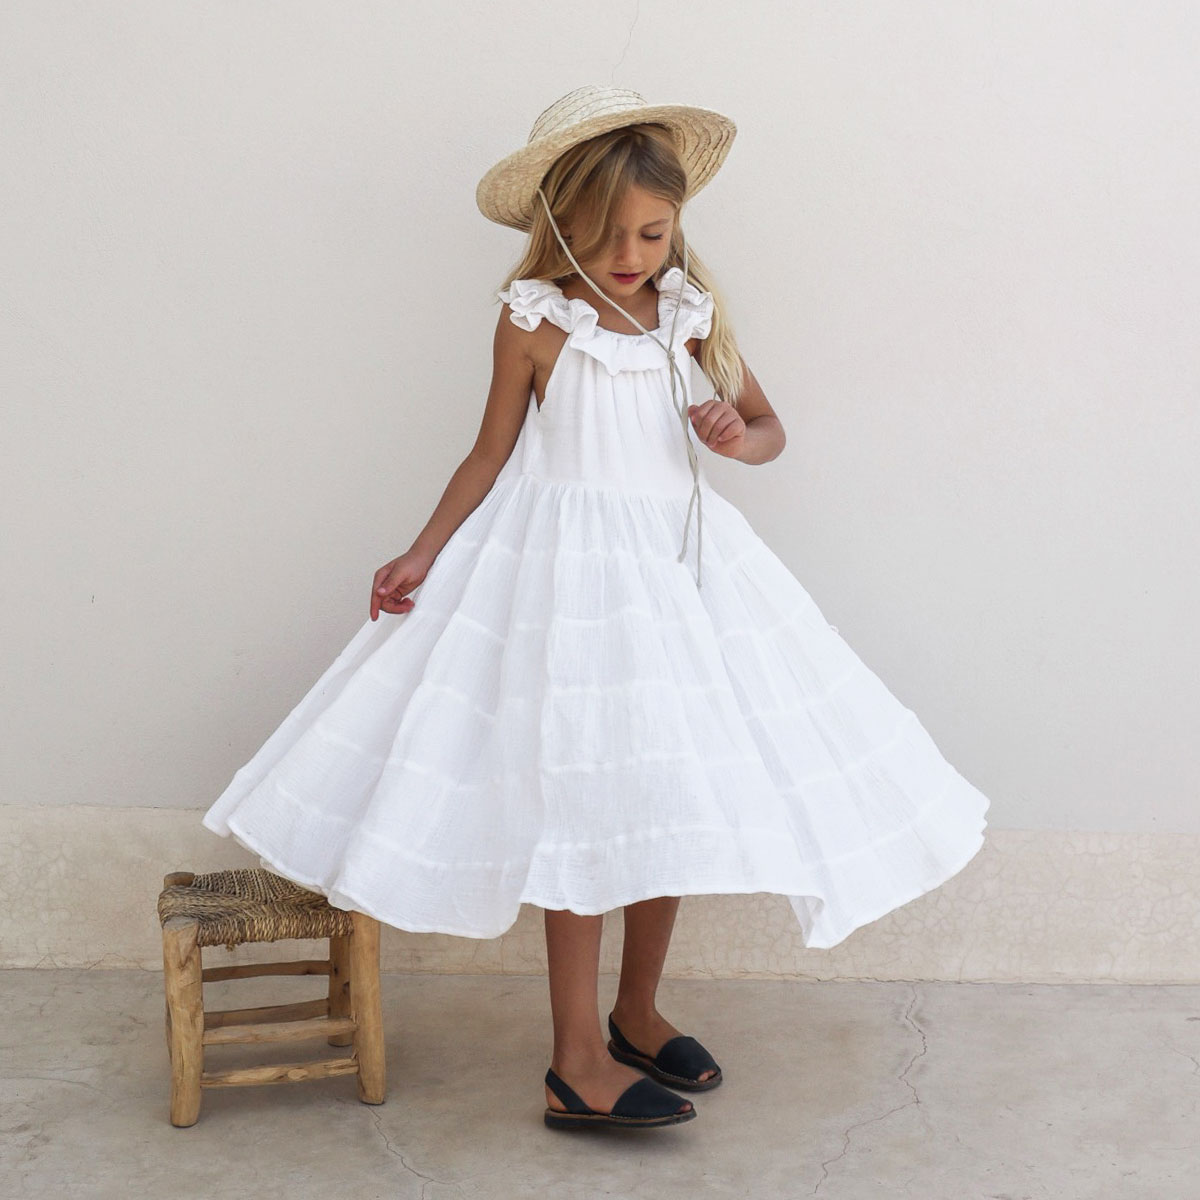 Yoli & Otis Sleeveless Launa Dress in White on girl